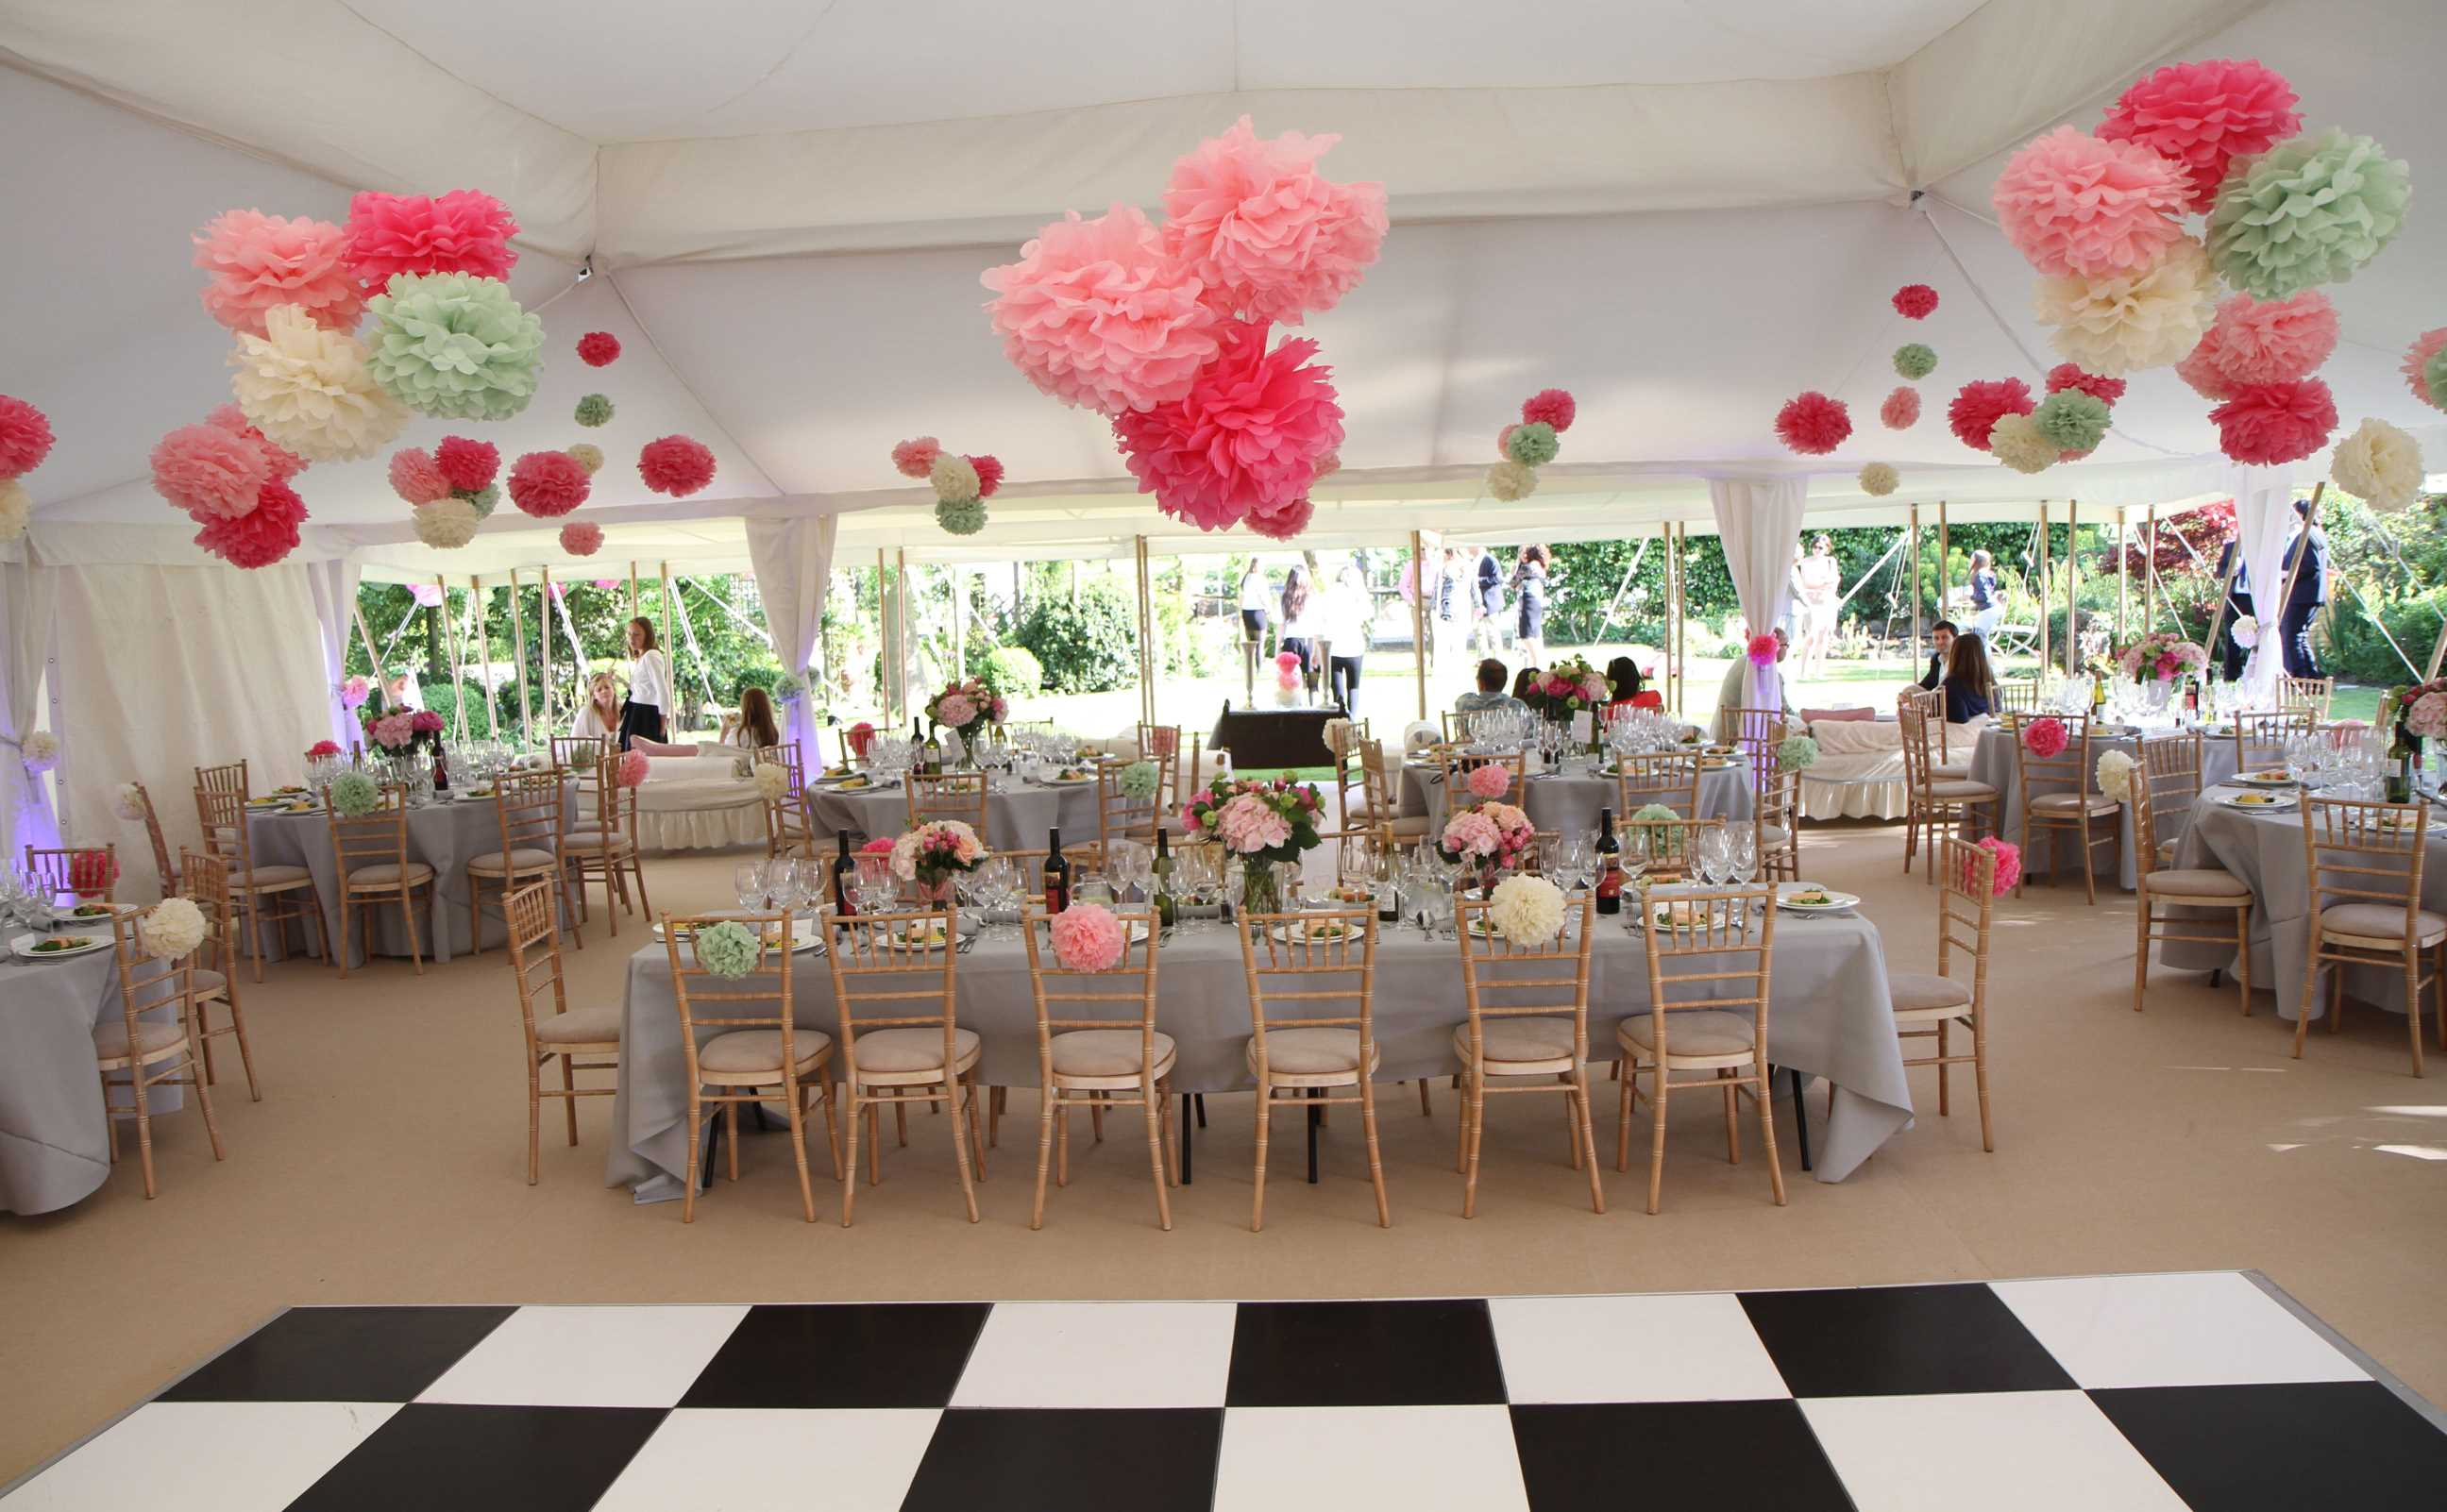 wedding venue decoration ideas choosing the right furniture to suit your venue yahire 1206